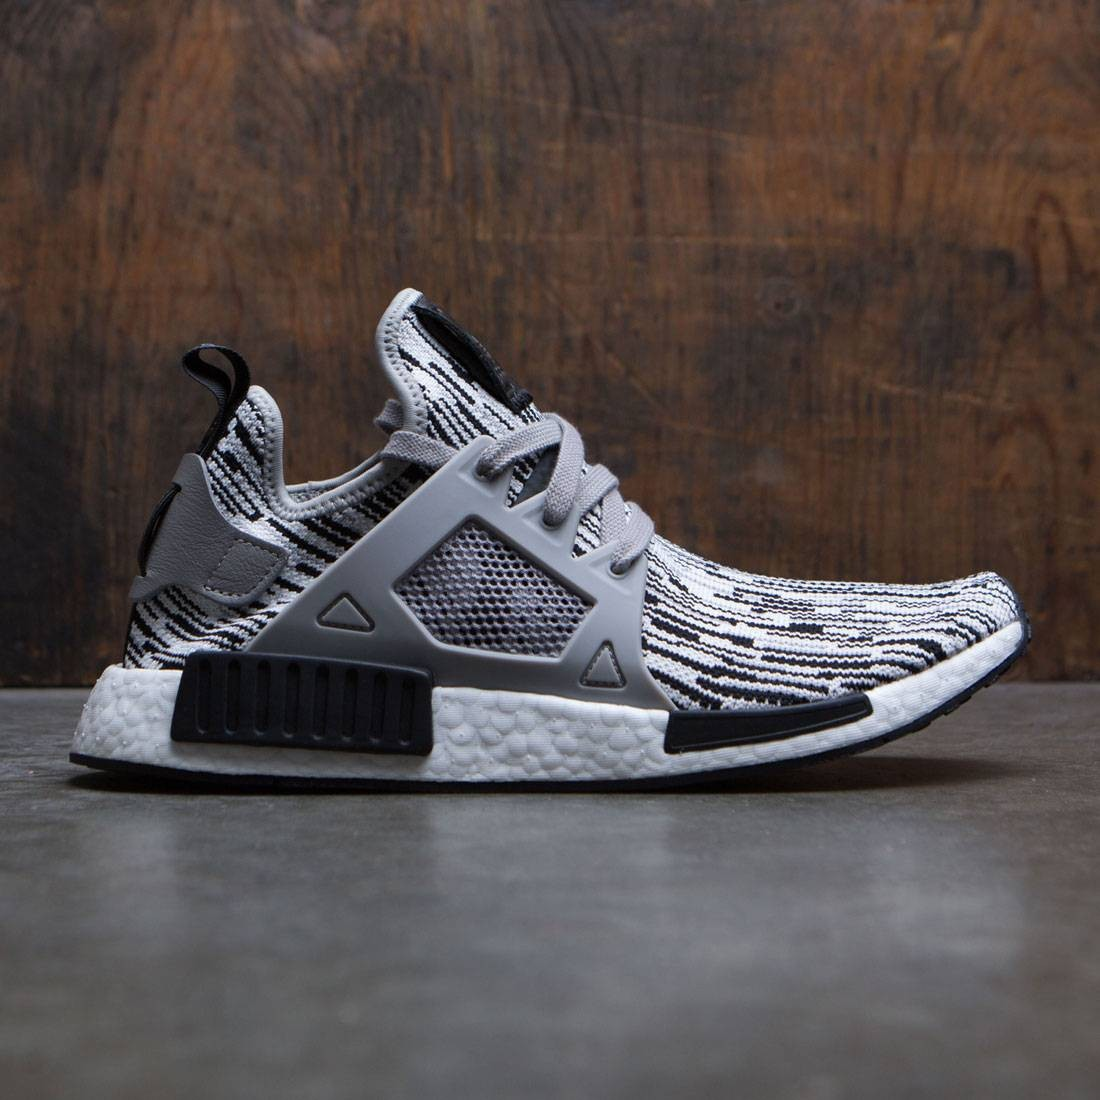 4bd4d84959 NMD XR1 Lifestyle BOOST adidas US